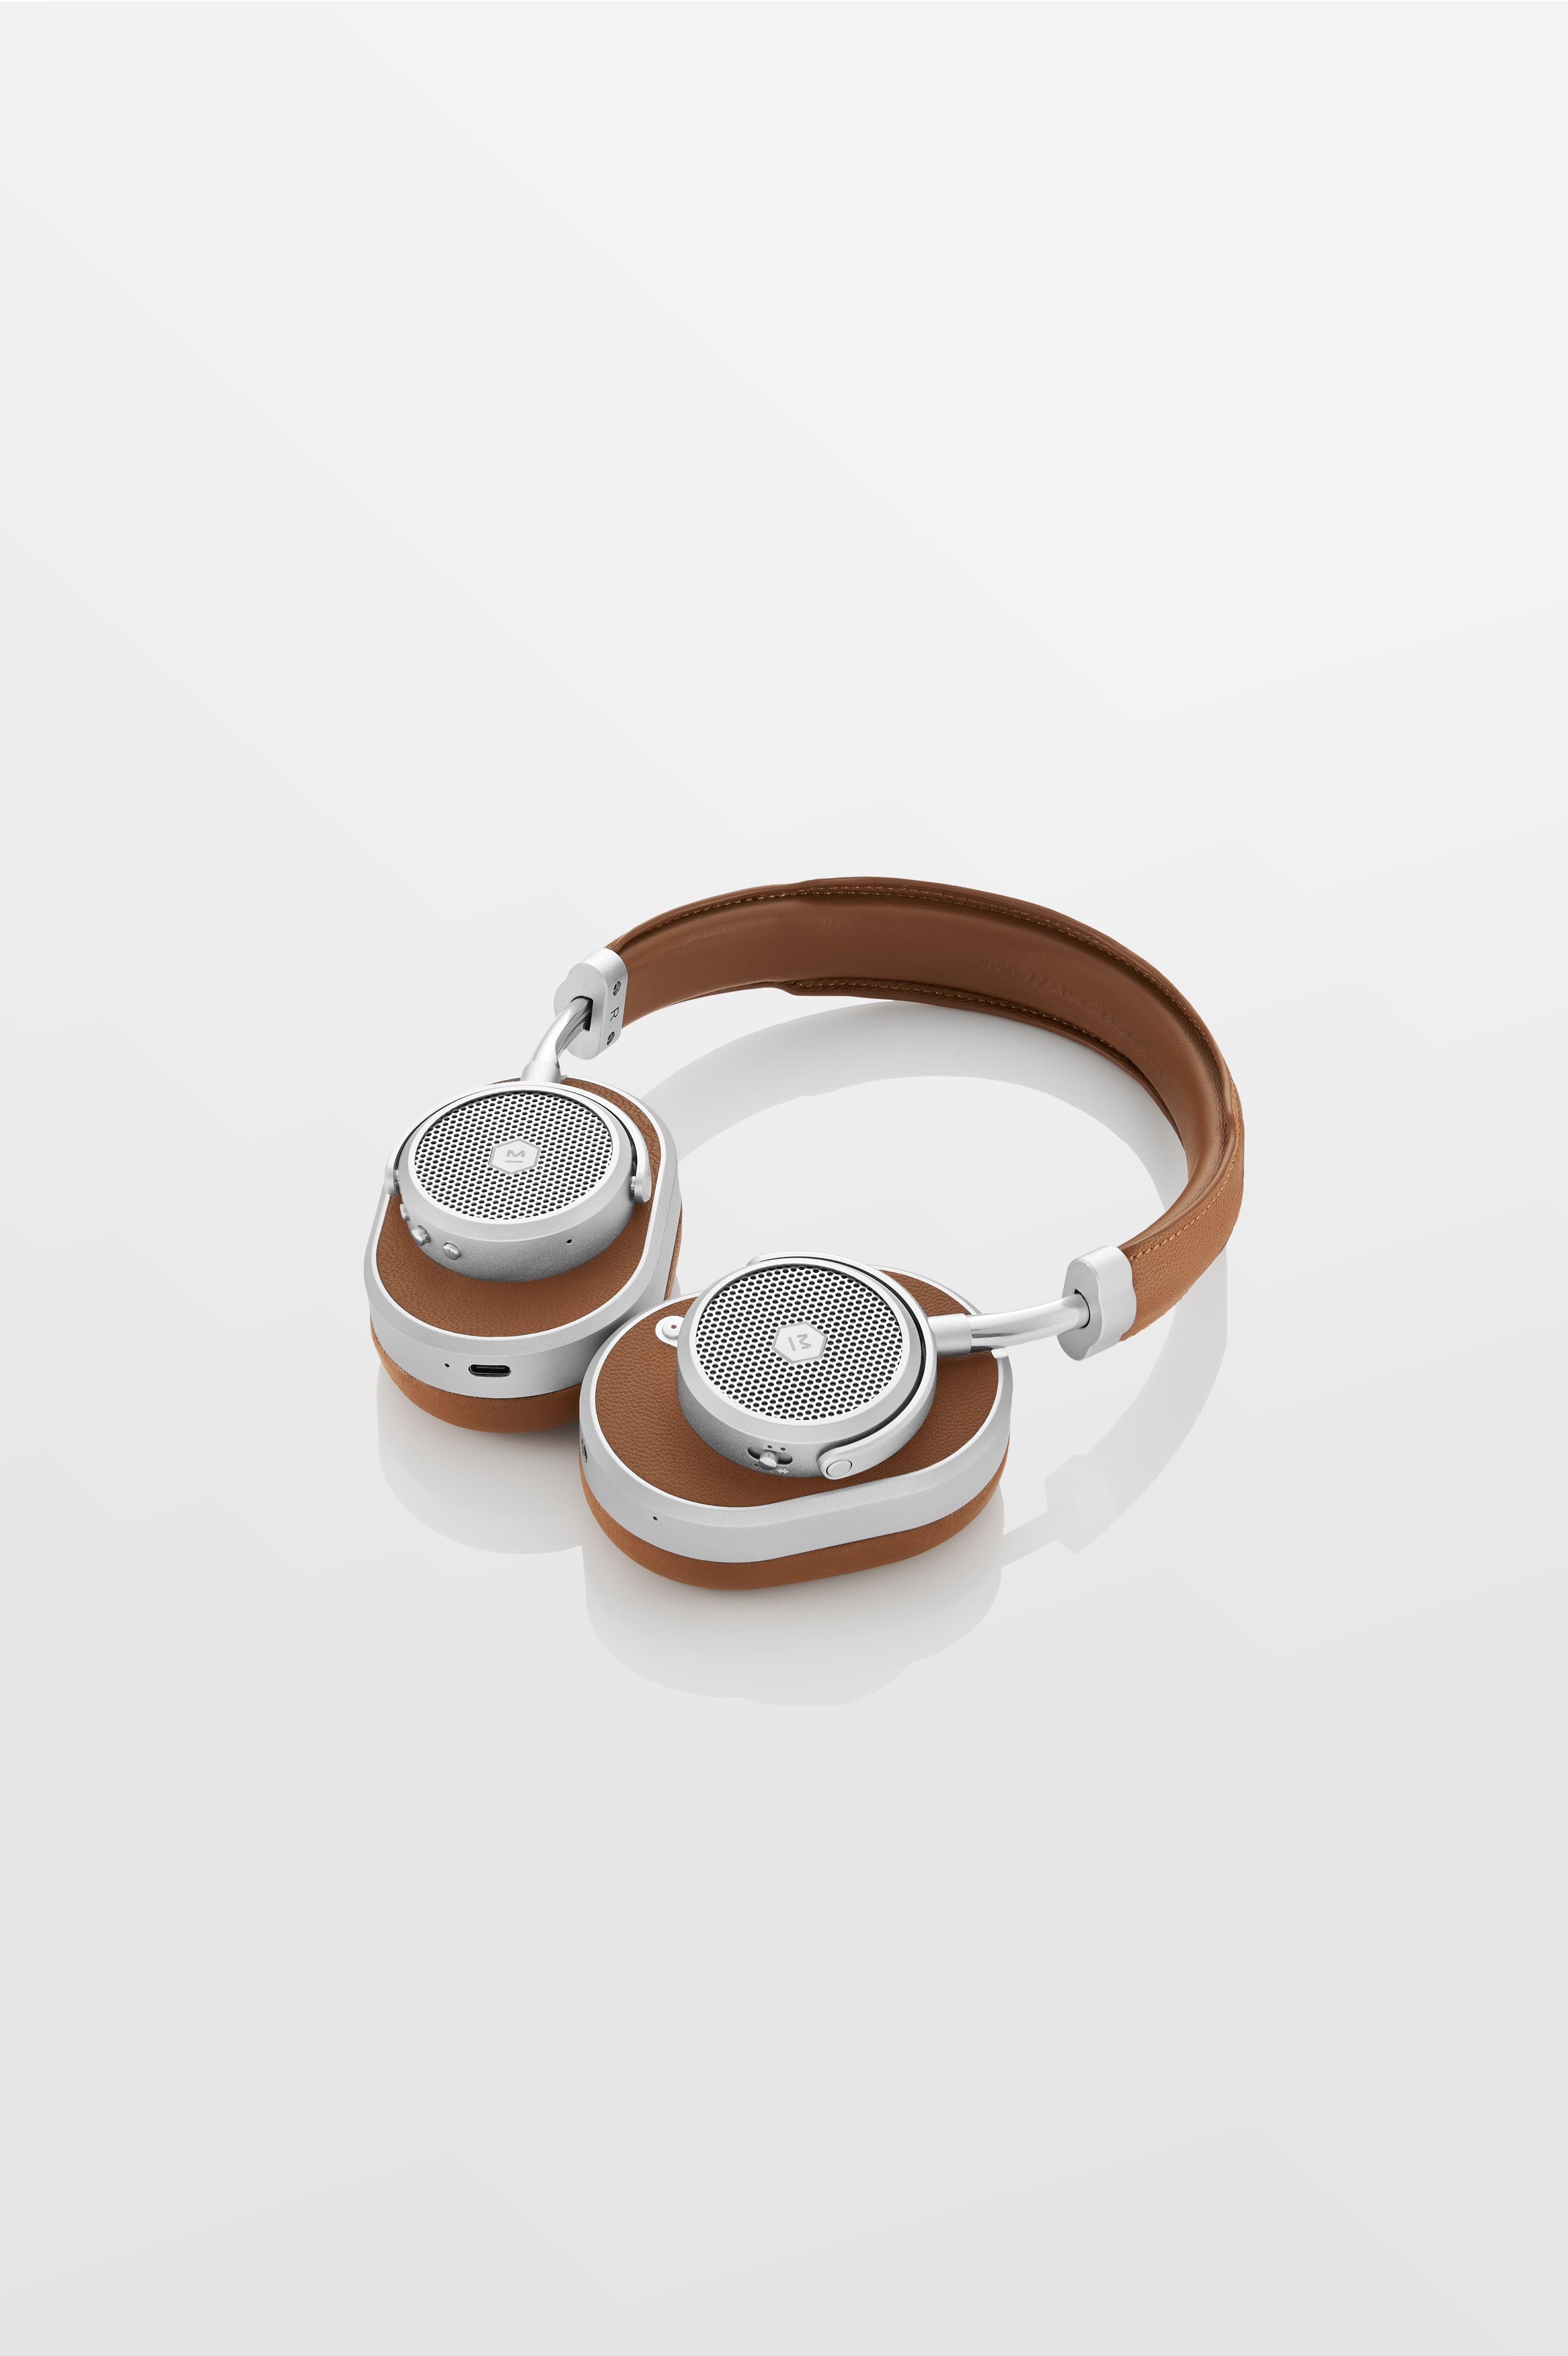 The Master & Dynamic MW65 in brown leather and silver aluminium